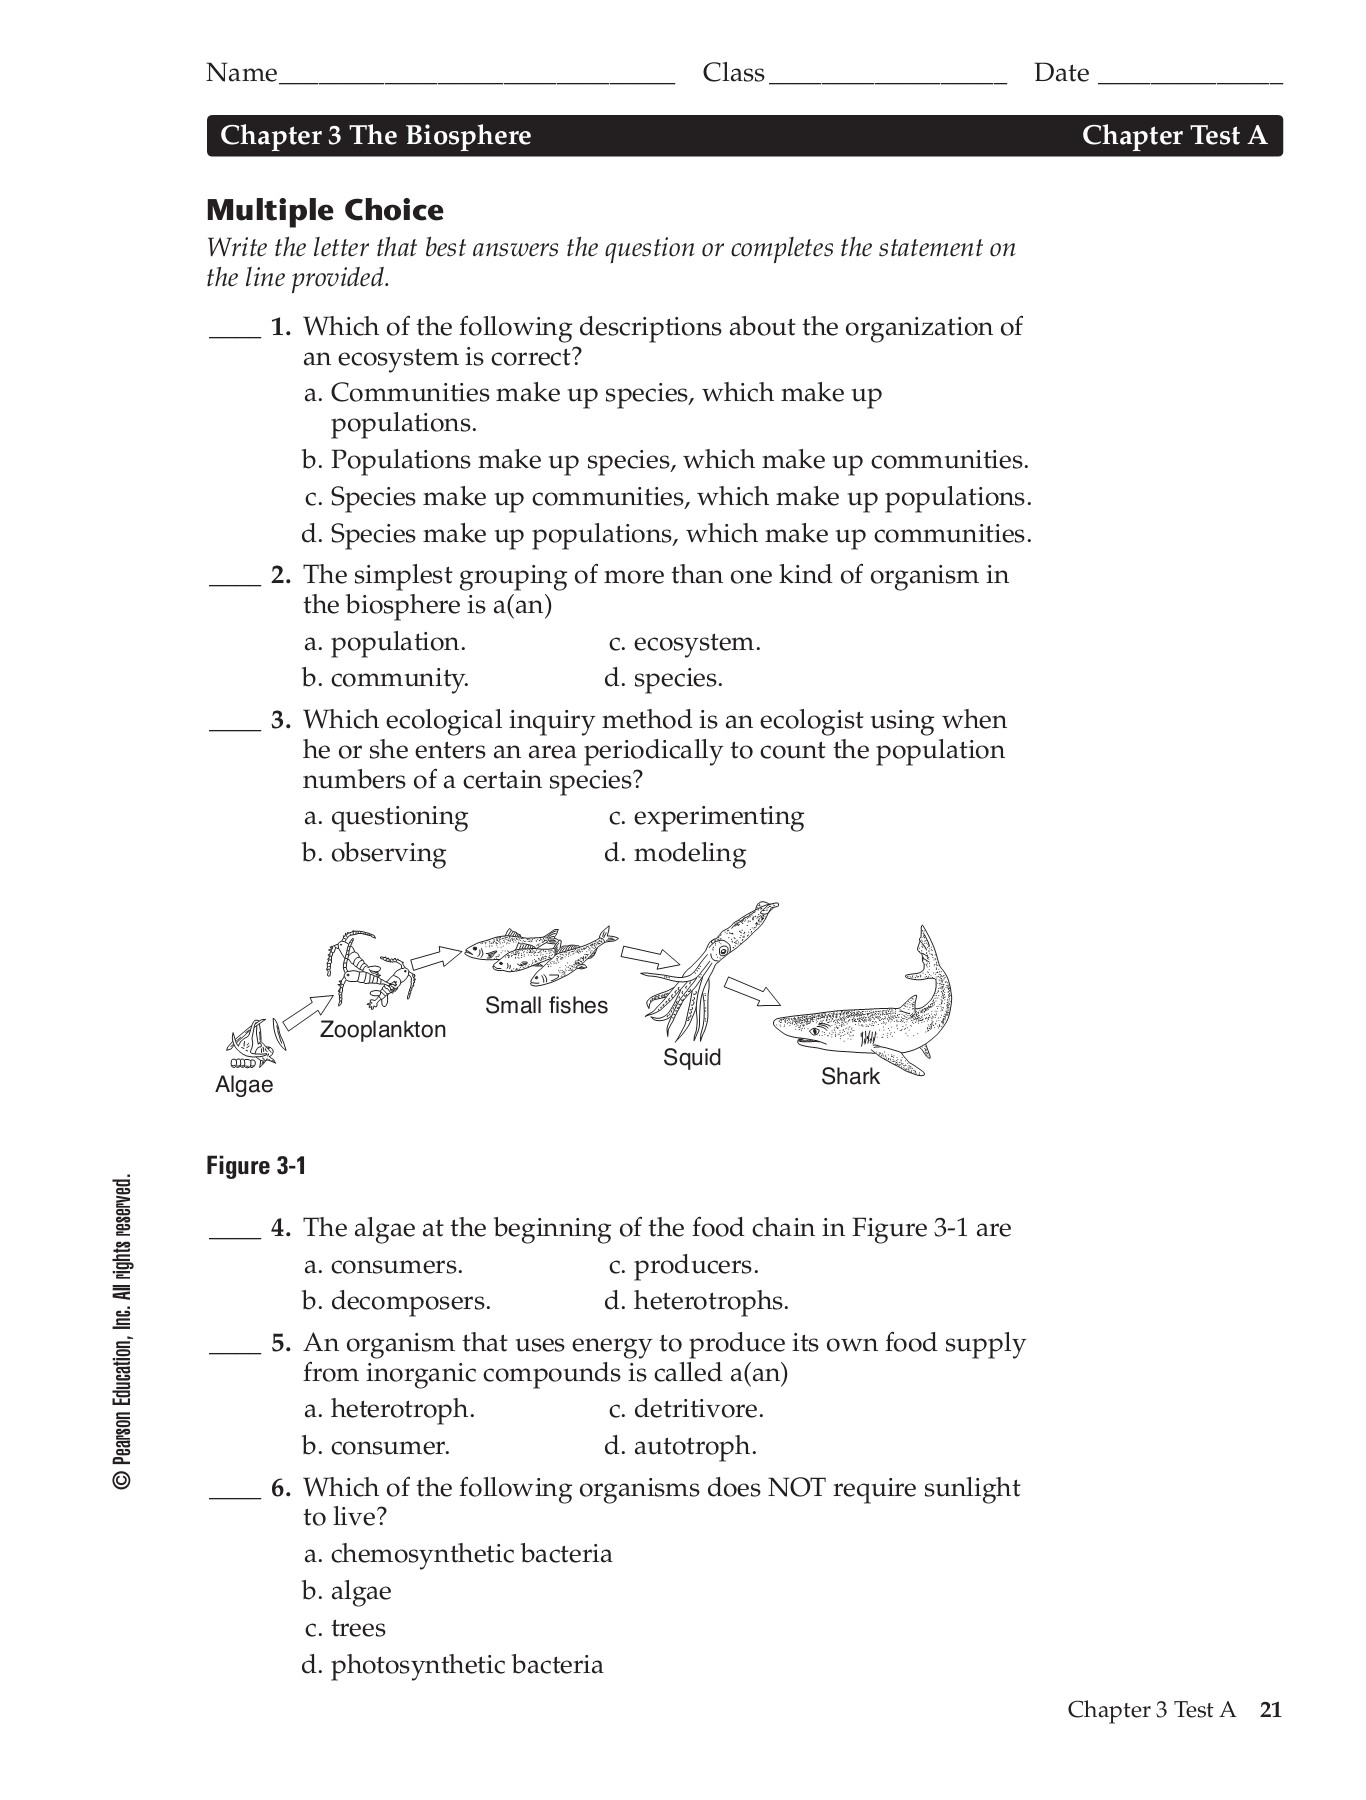 Chapter 3 (The Biosphere) Test A - DiBiasioScience